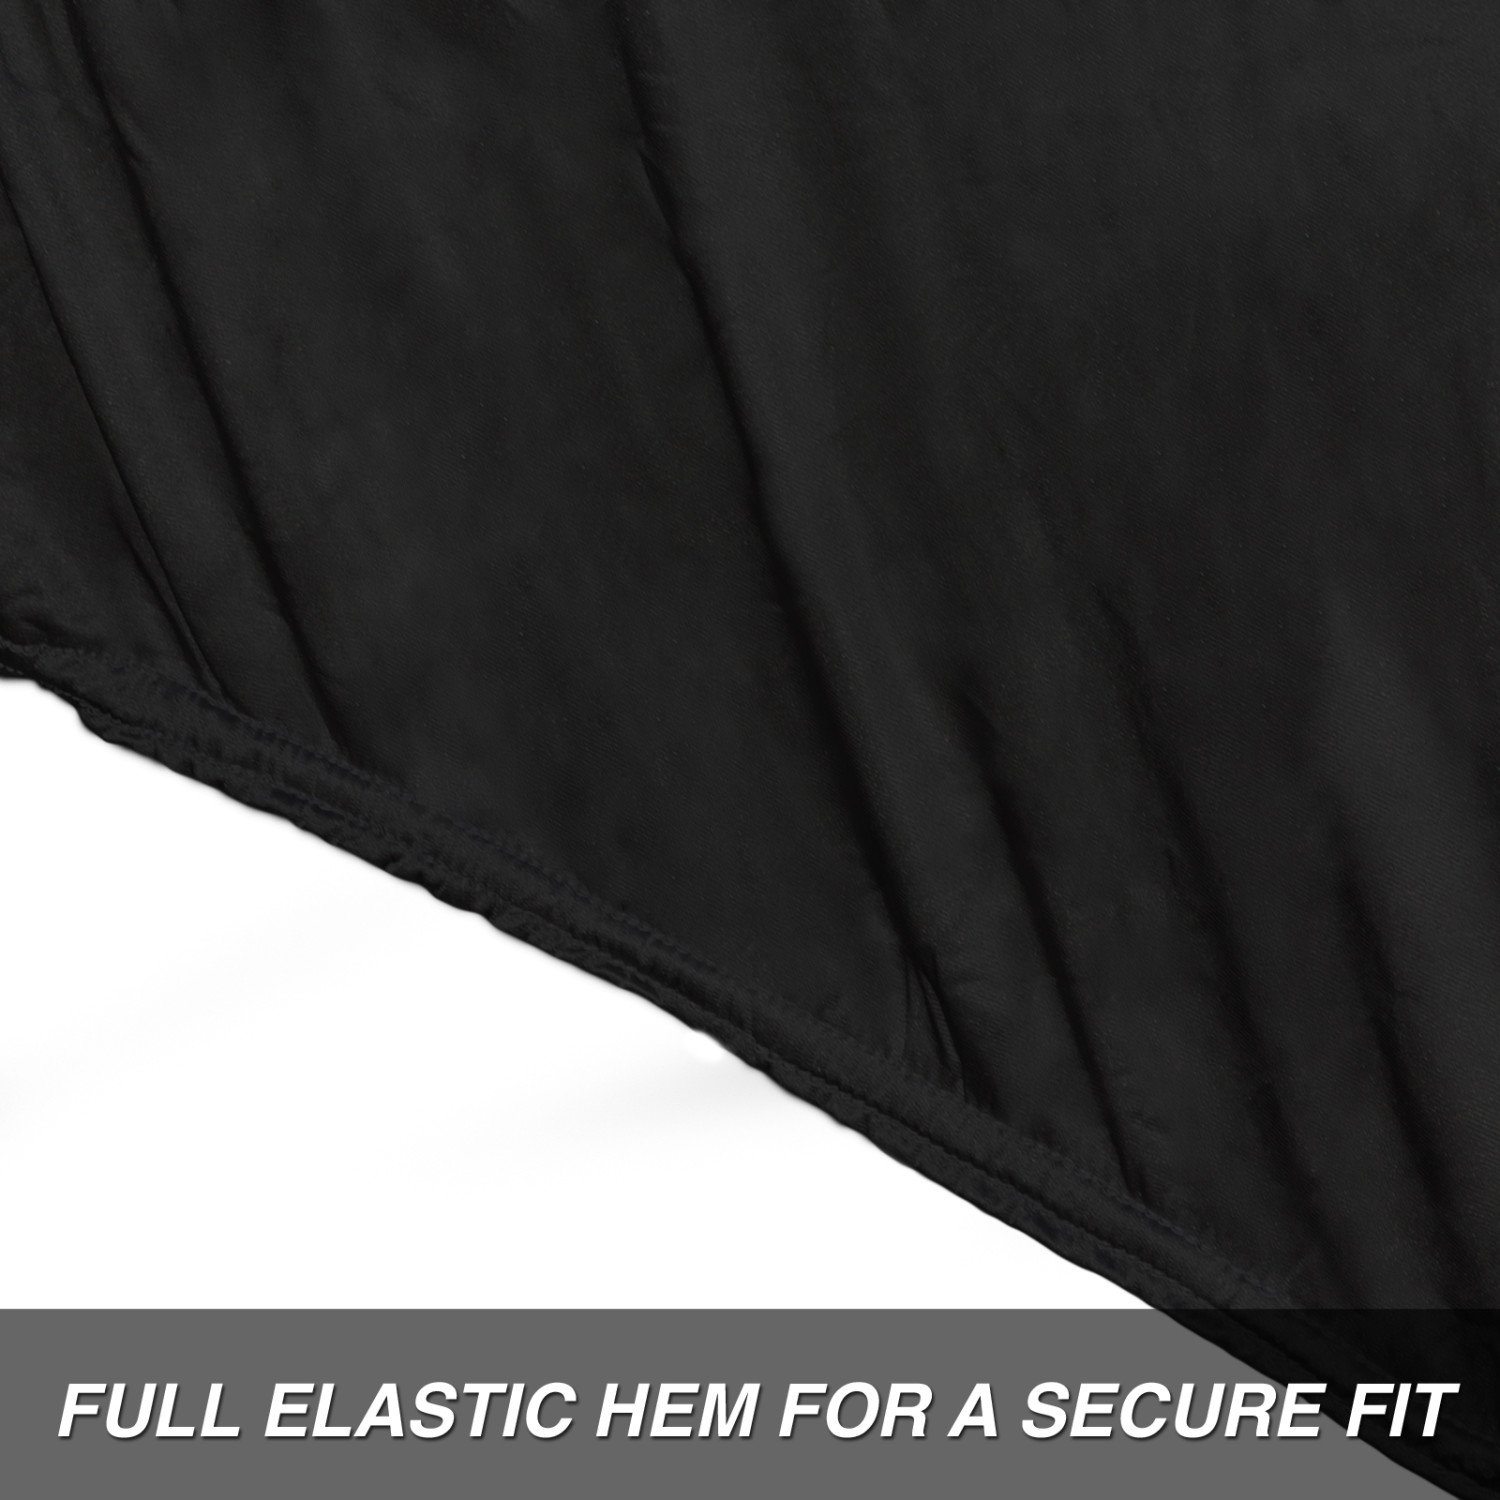 MC095003002 Budge Soft Stretch Motorcycle Cover Indoor Fits Motorcycles up to 86 Long Nylon and Polyester, Black